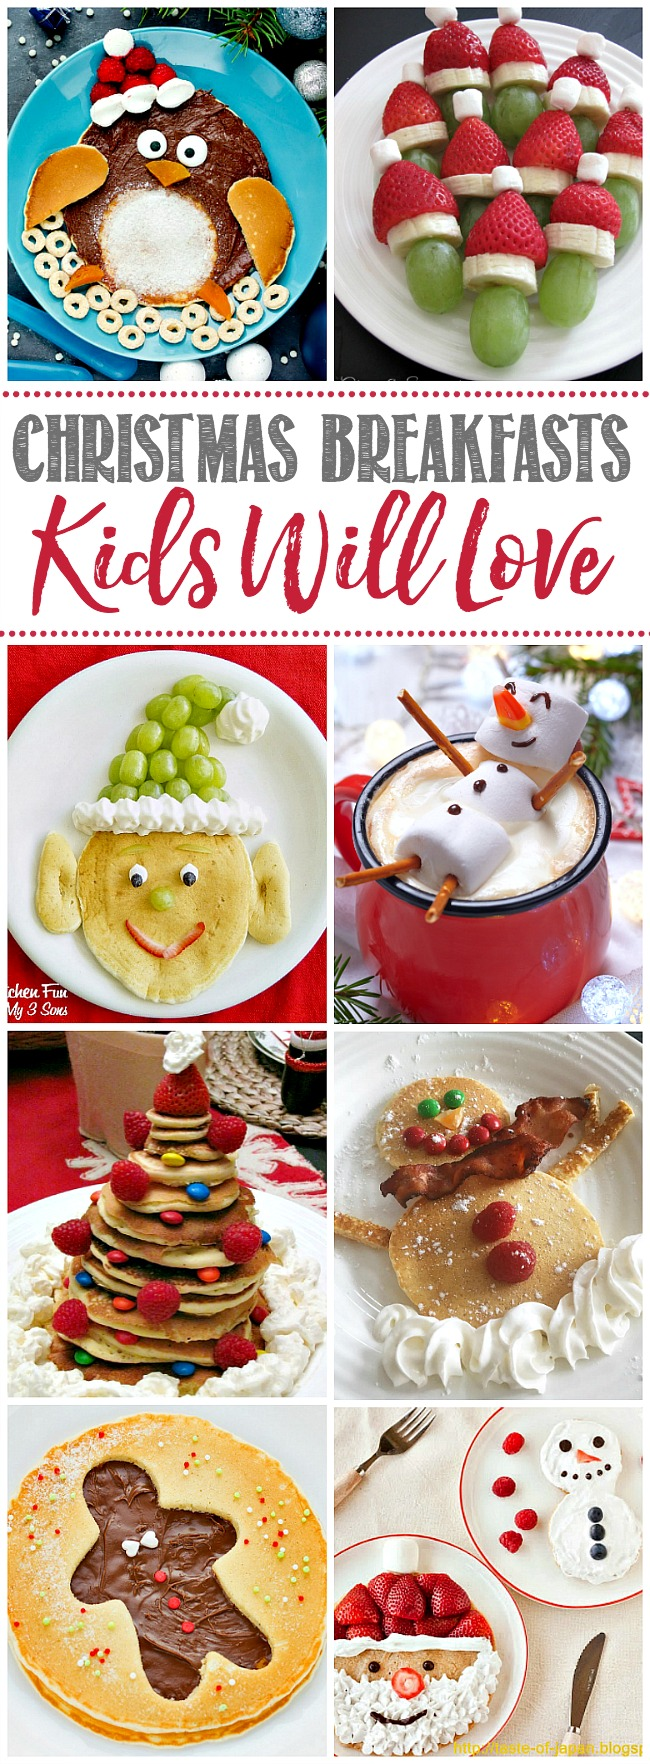 Collage of fun Christmas breakfast ideas for kids.